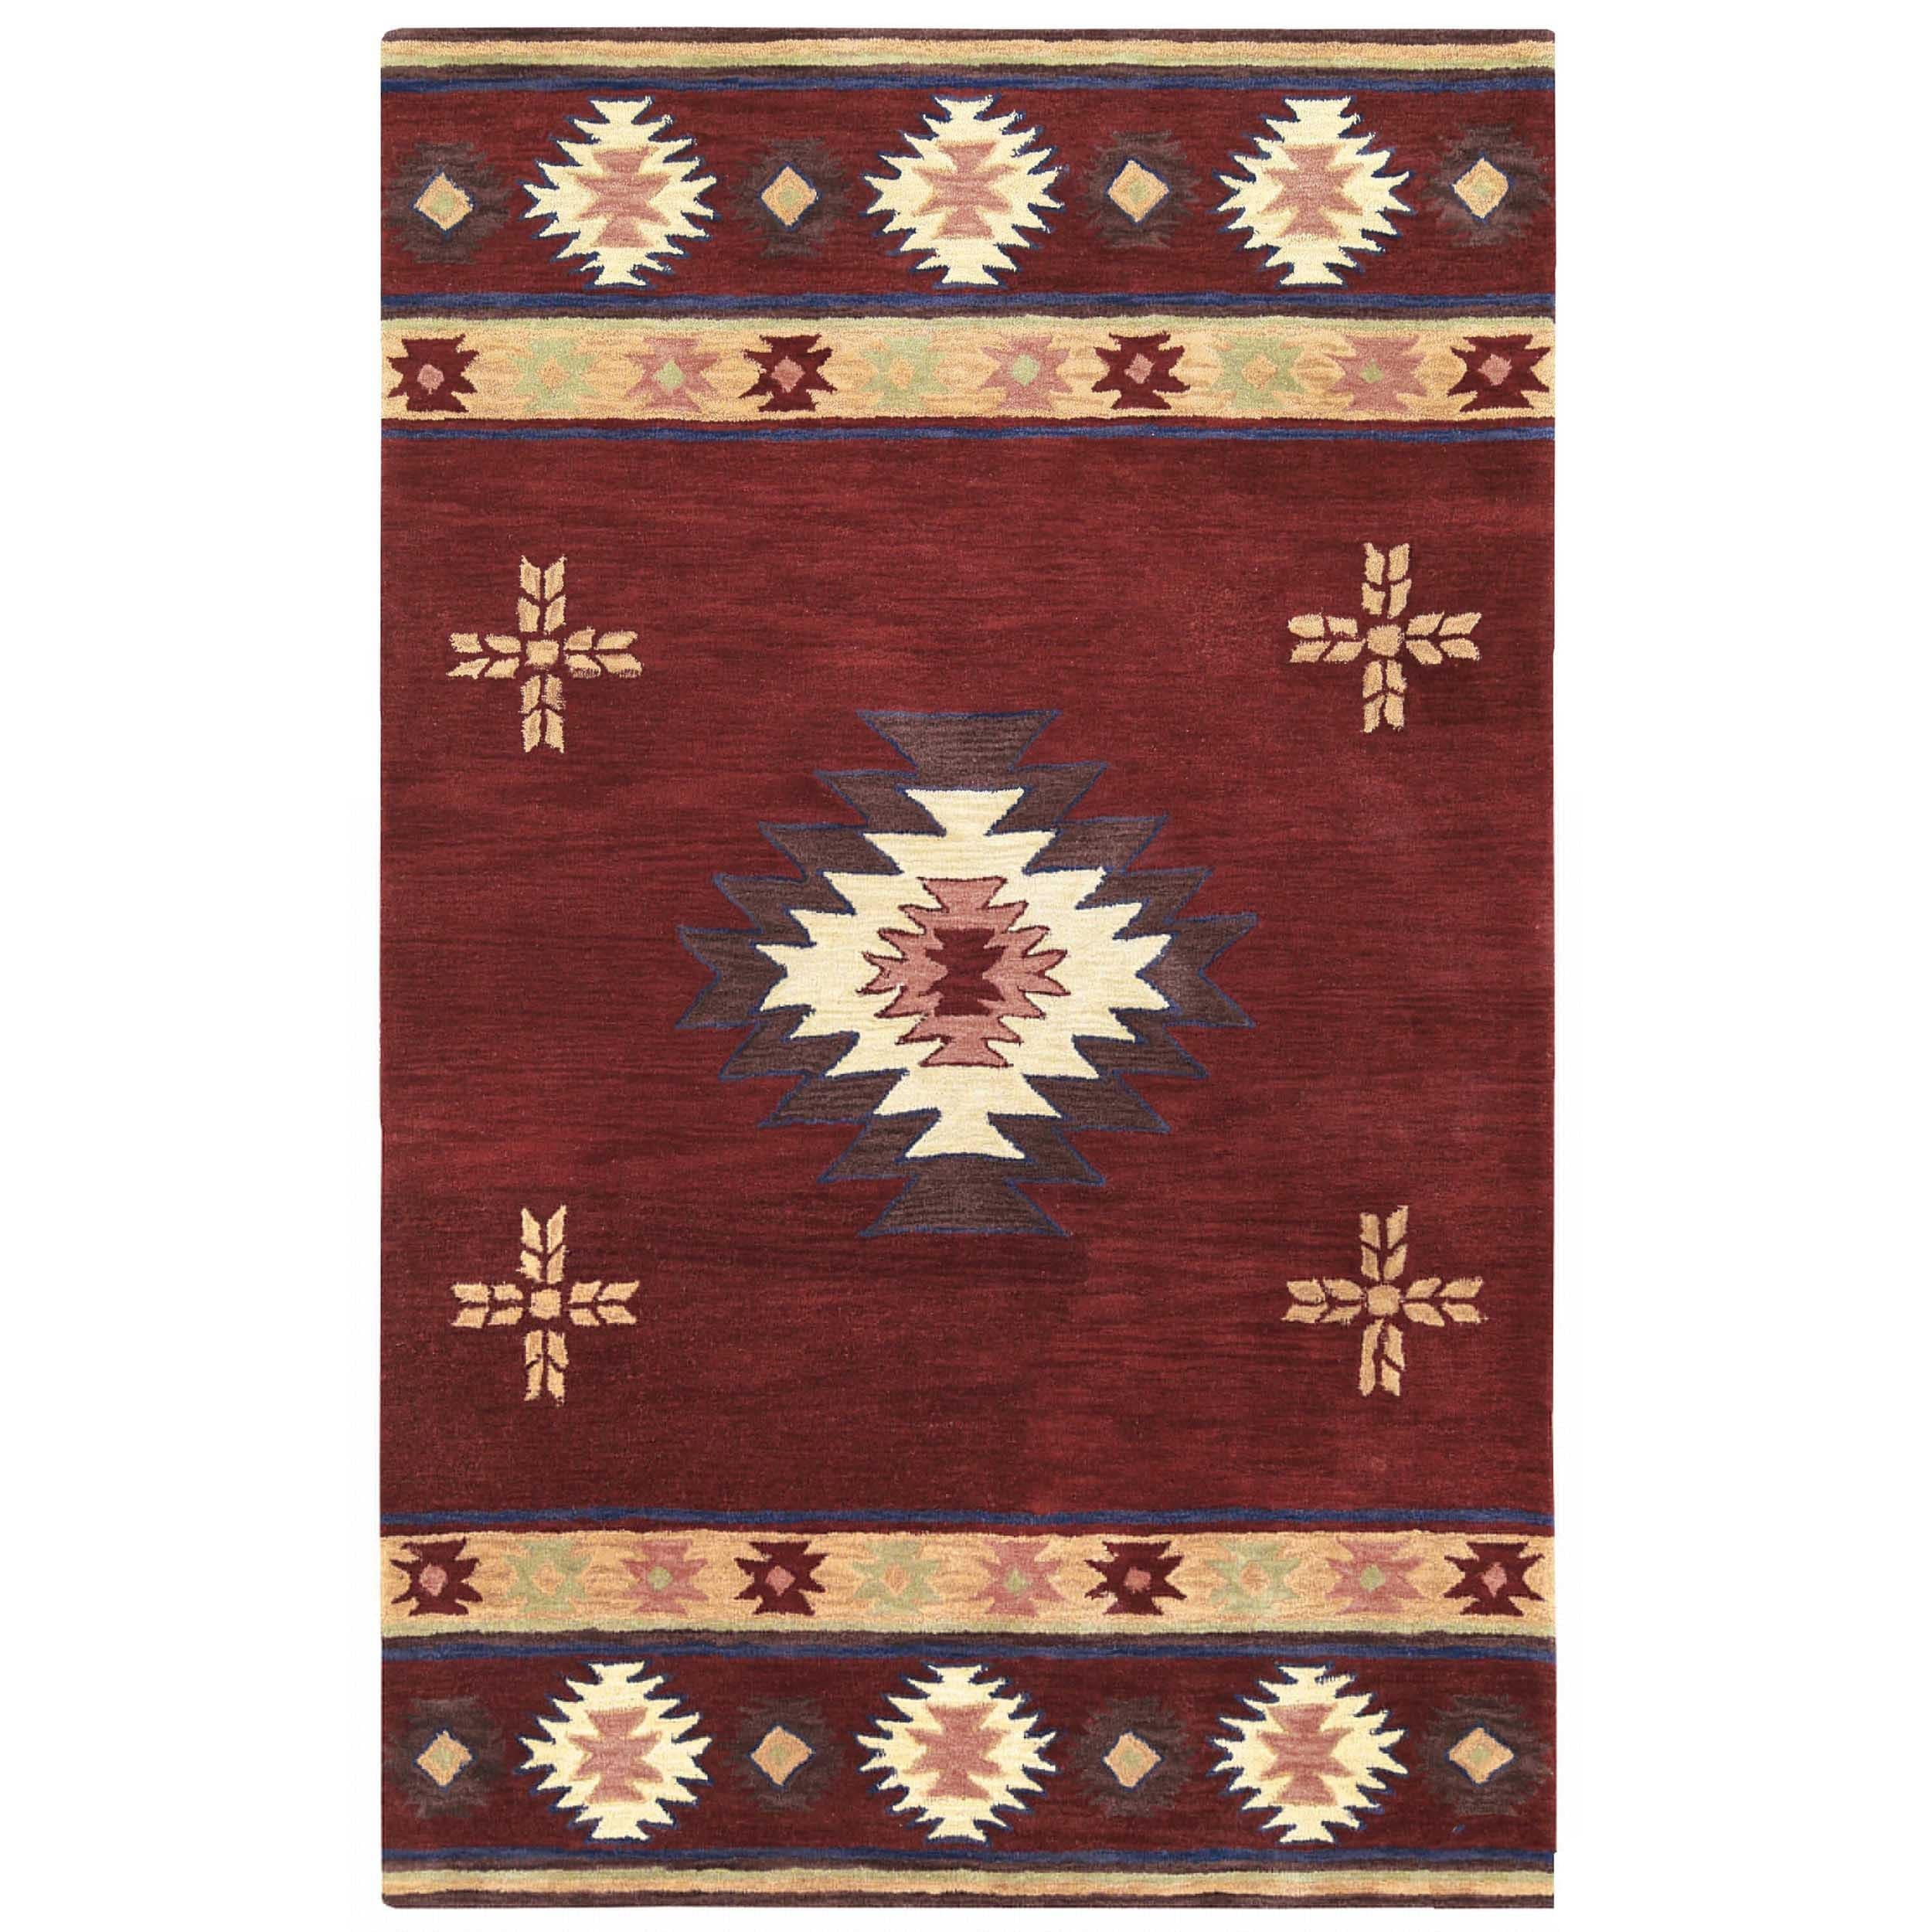 Ryder Collection Southwest Rug On Sale Overstock 10362465